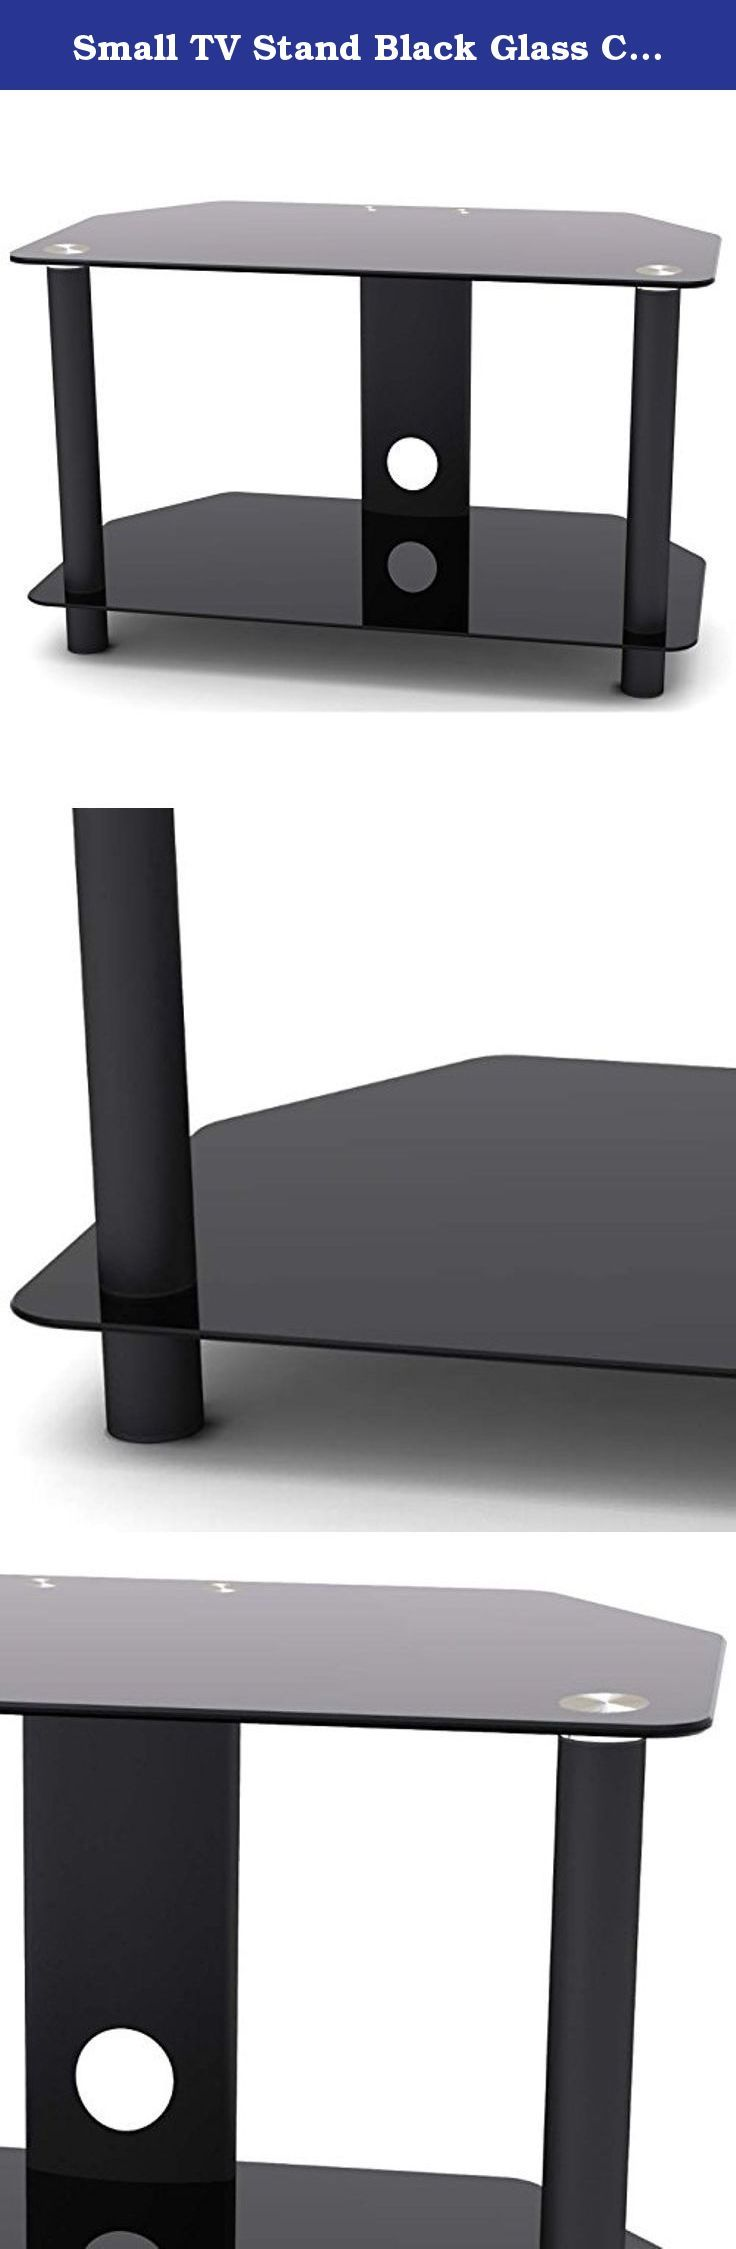 Small TV Stand Black Glass Console - Fits Up to 32 Inch Television - Best Addition to Your Living Room Entertainment Media Furniture. The modern, small TV stand is made with highly durable powder coated steel and tempered glass. Boasting a sleek style and a modern appeal, this black glass TV stand will provide you with everything you need to create a stylish entertainment area in your living room, guest room, basement or even the bedroom.